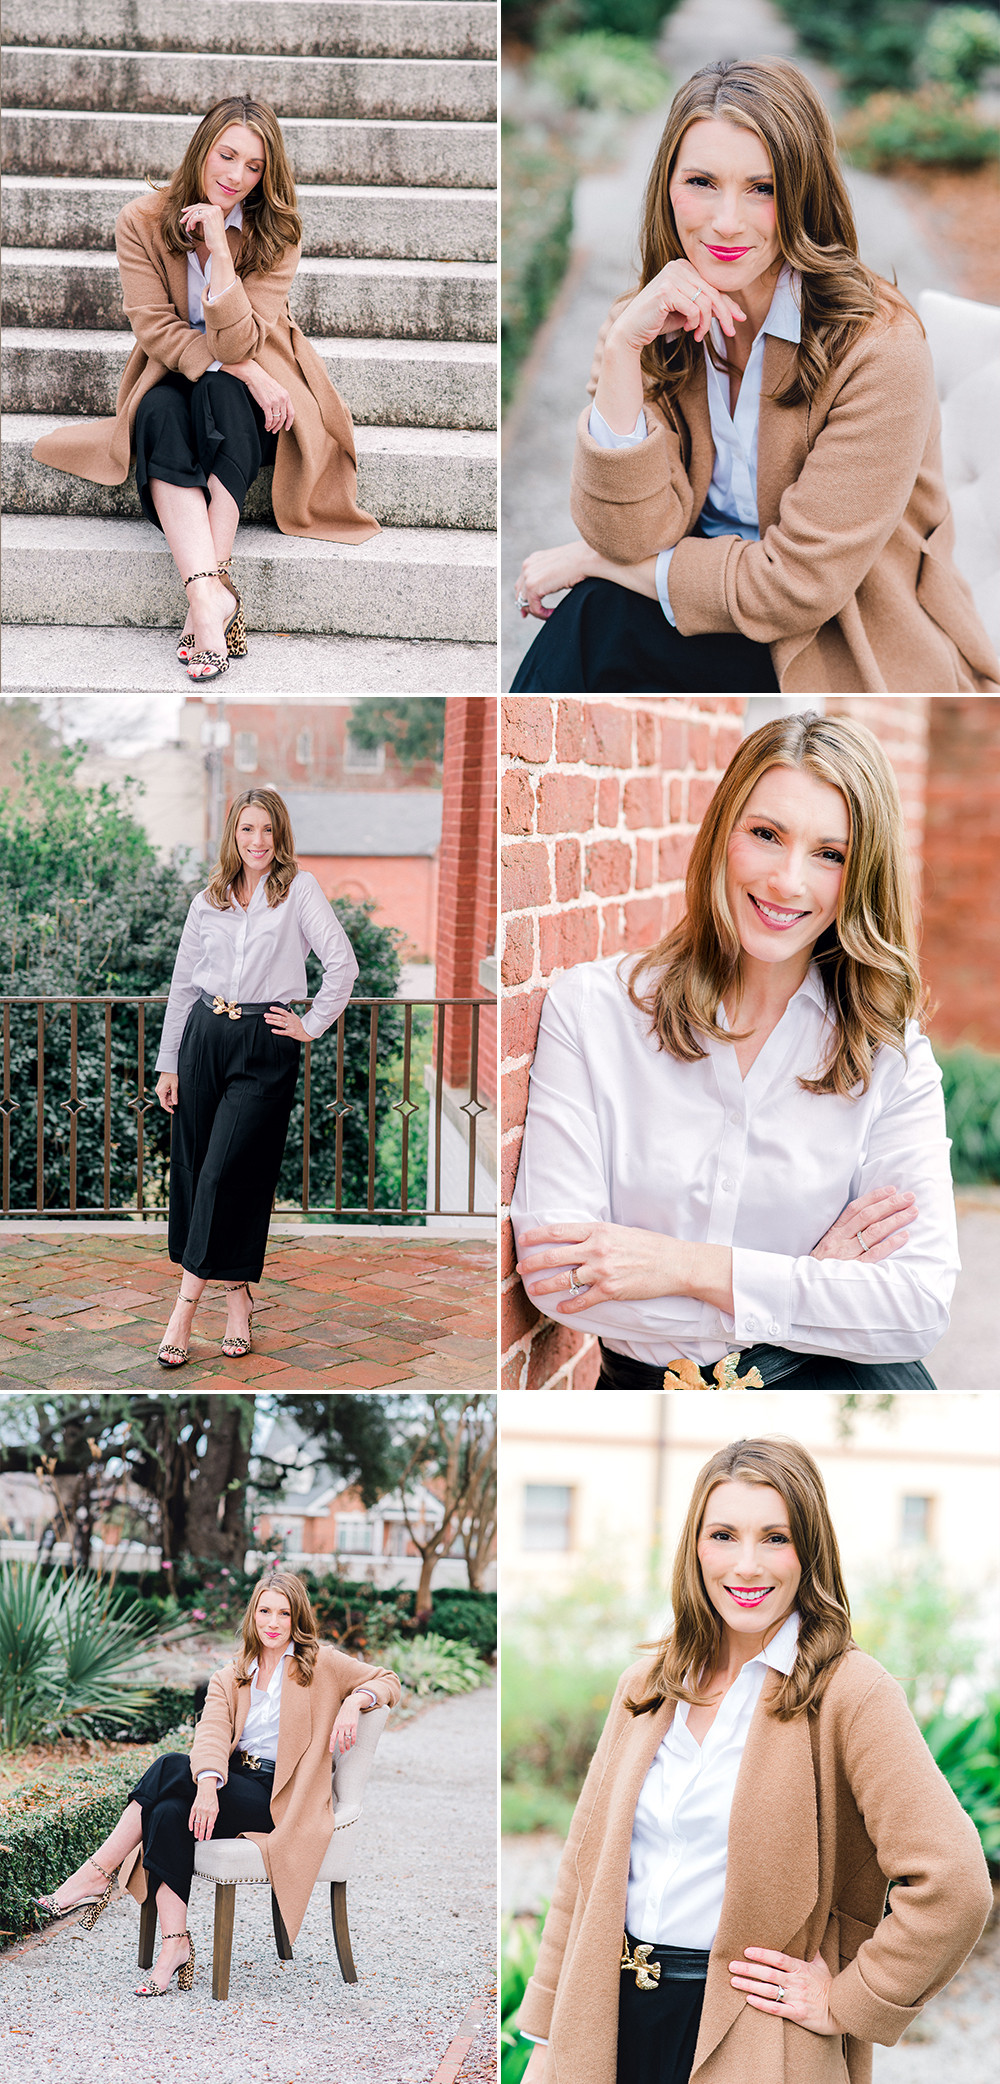 Business Branding Headshots | Columbia, SC headshot photographer | Nina Bashaw is a fine art portrait and wedding photographer serving Columbia, Charleston, Greenville, Charlotte, NC Augusta, Ga, Nashville, TN surrounding areas and worldwide destination weddings and elopements.